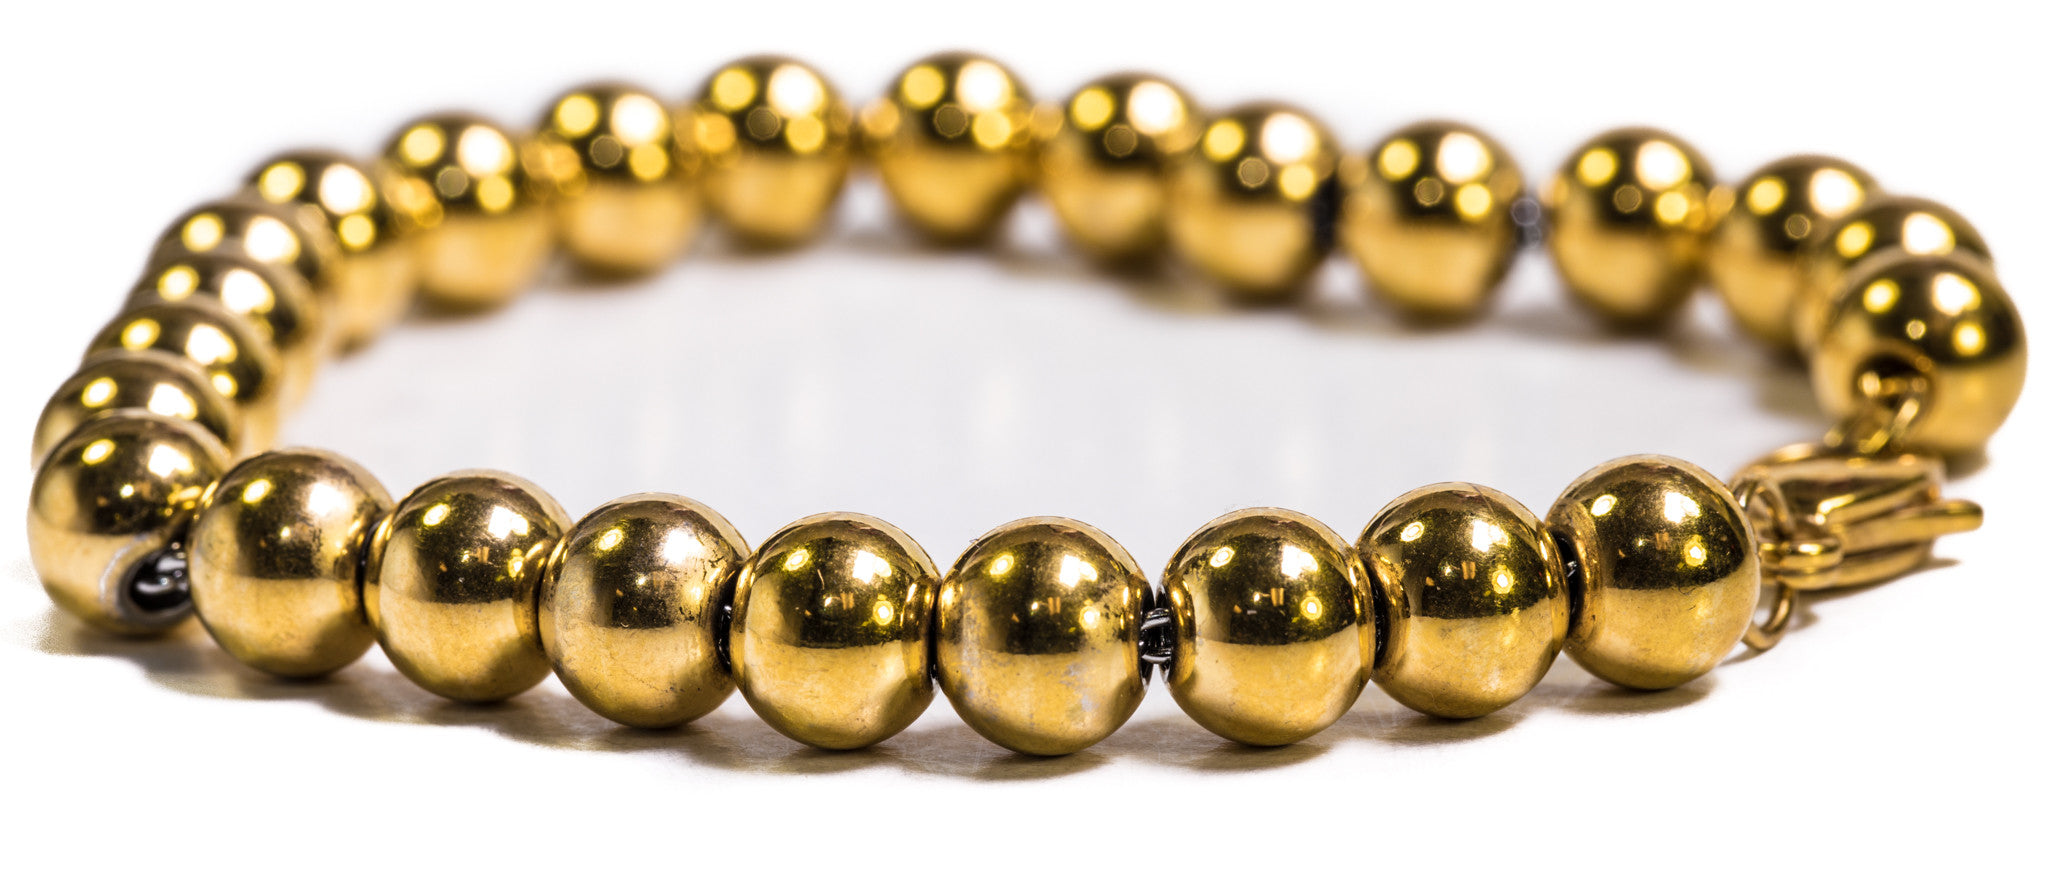 Beaded Moon Bracelet - 18k Gold Plated - ACCESSORIES, Golden Gilt, SNEAKER STUDIO, GOLDEN GILT, DESIGN BY TSS